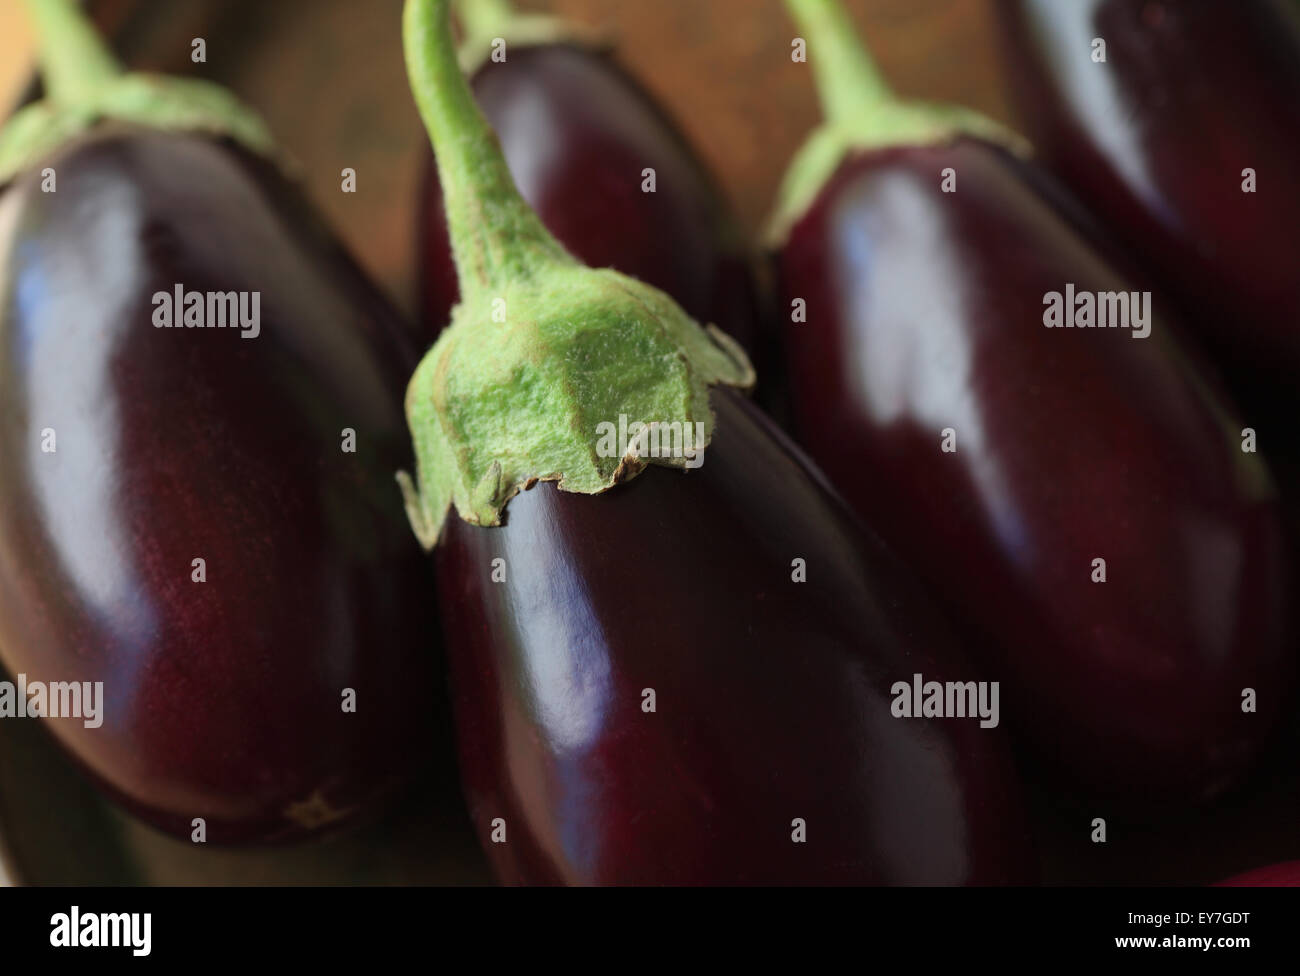 A grouping of fresh eggplants close up - Stock Image